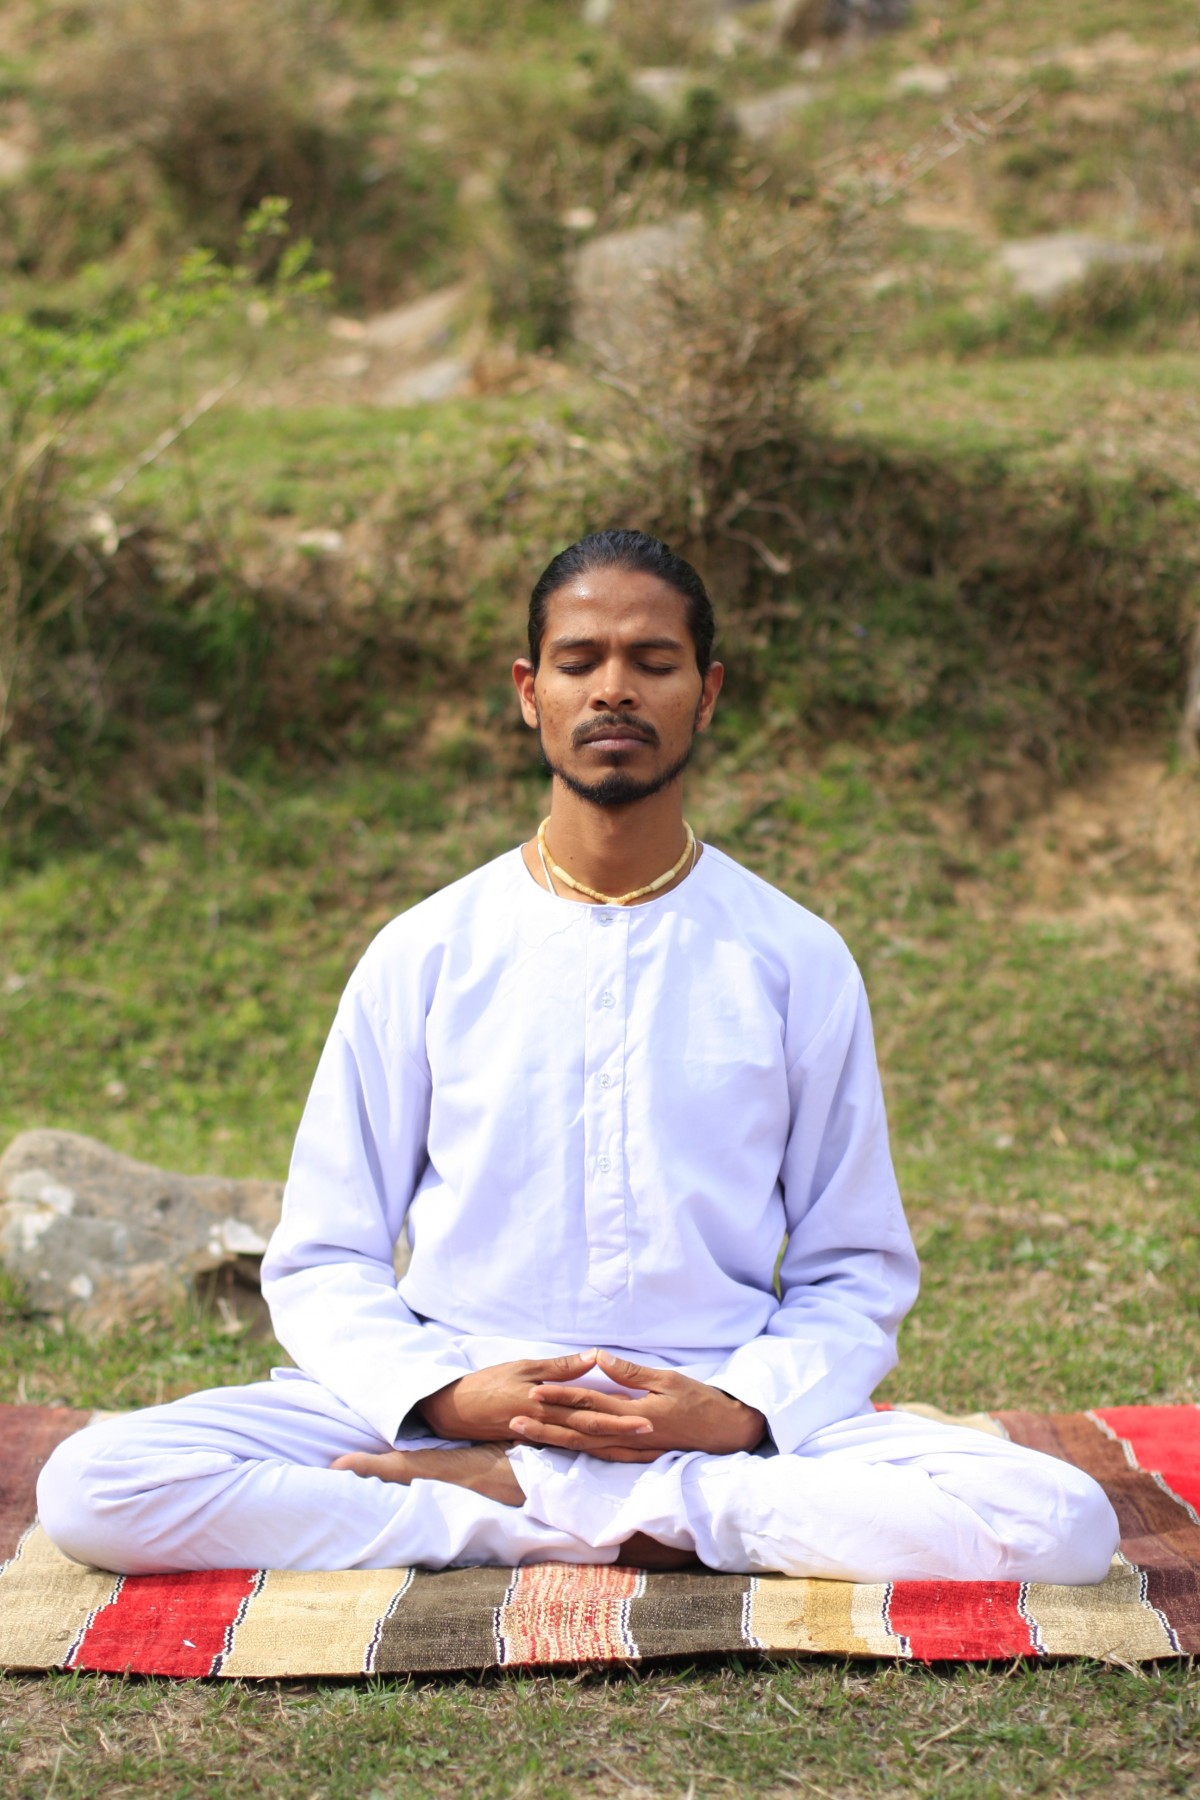 Man In meditatio.jpeg